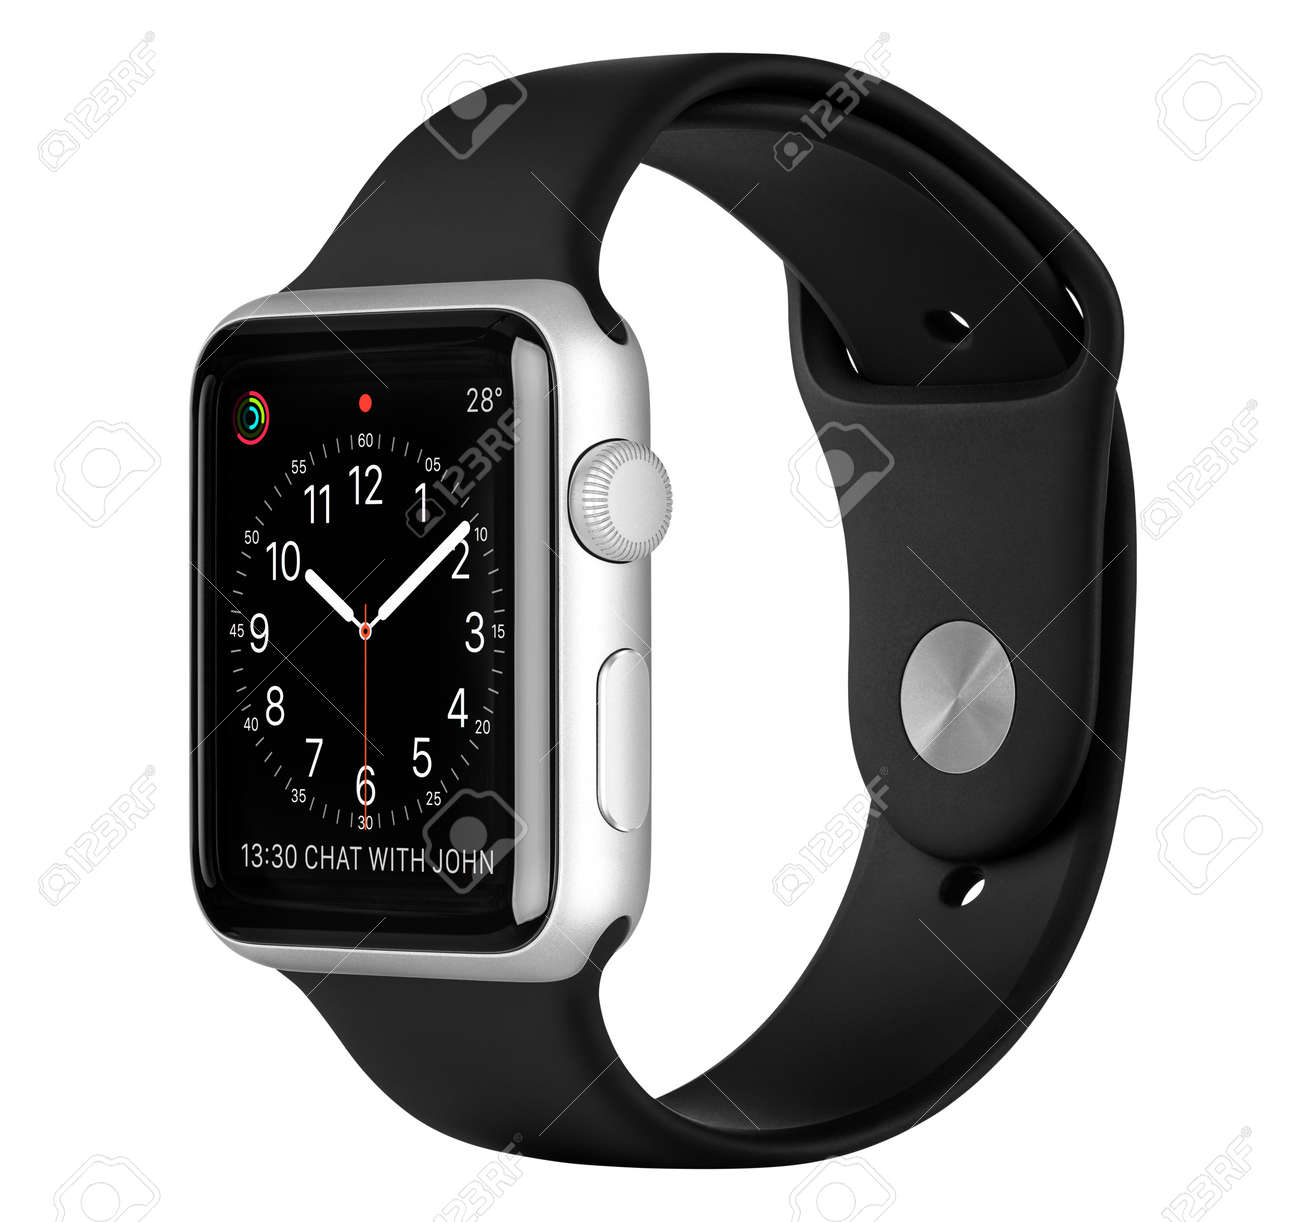 Varna, Bulgaria - October 16, 2015: Apple Watch Sport 42mm Silver Aluminum Case with Black Sport Band with clock face on the display. Side view studio shot fully in focus. Isolated on white background. - 49200379